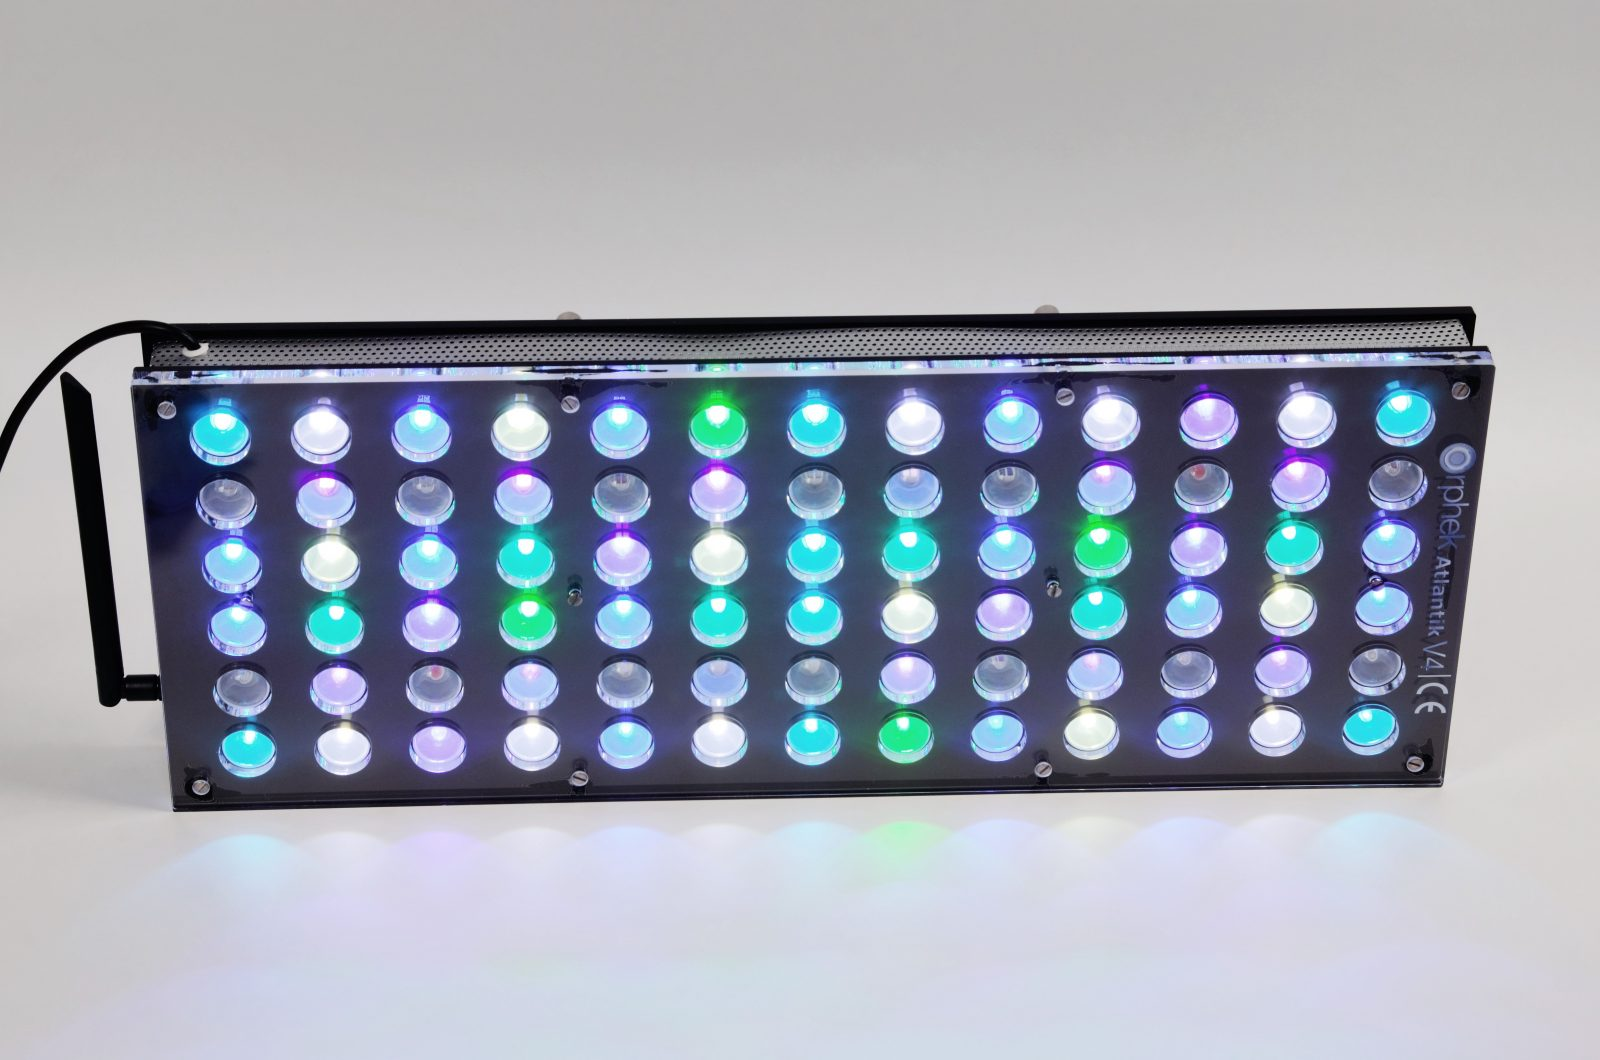 Orphek-Aquarium-LED-Lighting-Reef-Atlantik-V4-ljus på kanalen 1 + 2 + 3